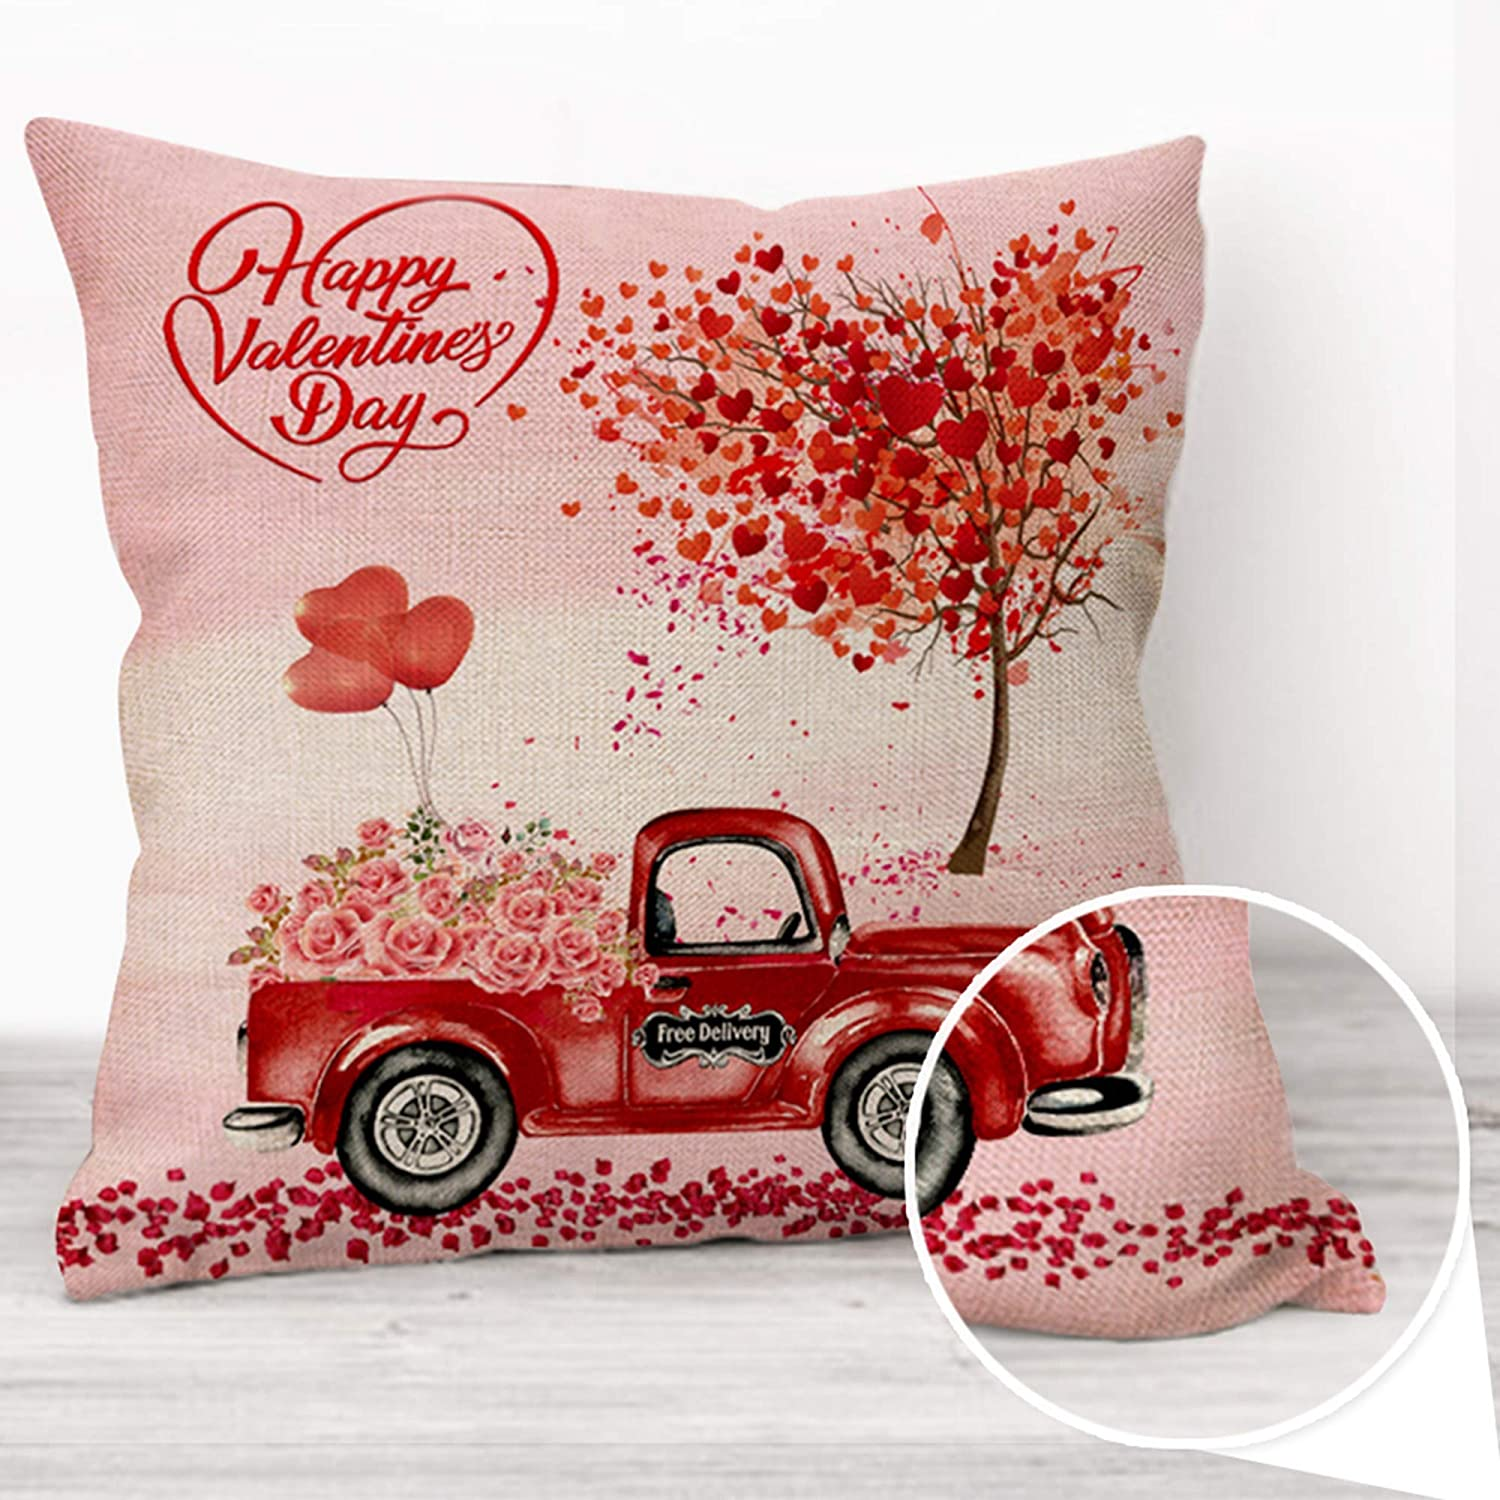 Amazon Com Hexagram Valentine S Day Throw Pillow Cover Cushion Case Decorative Cotton Linen Square Pillow Case 18 X 18 Inch For Sofa Couch Home Decor Love Tree Red Truck Valentines Gift For Women